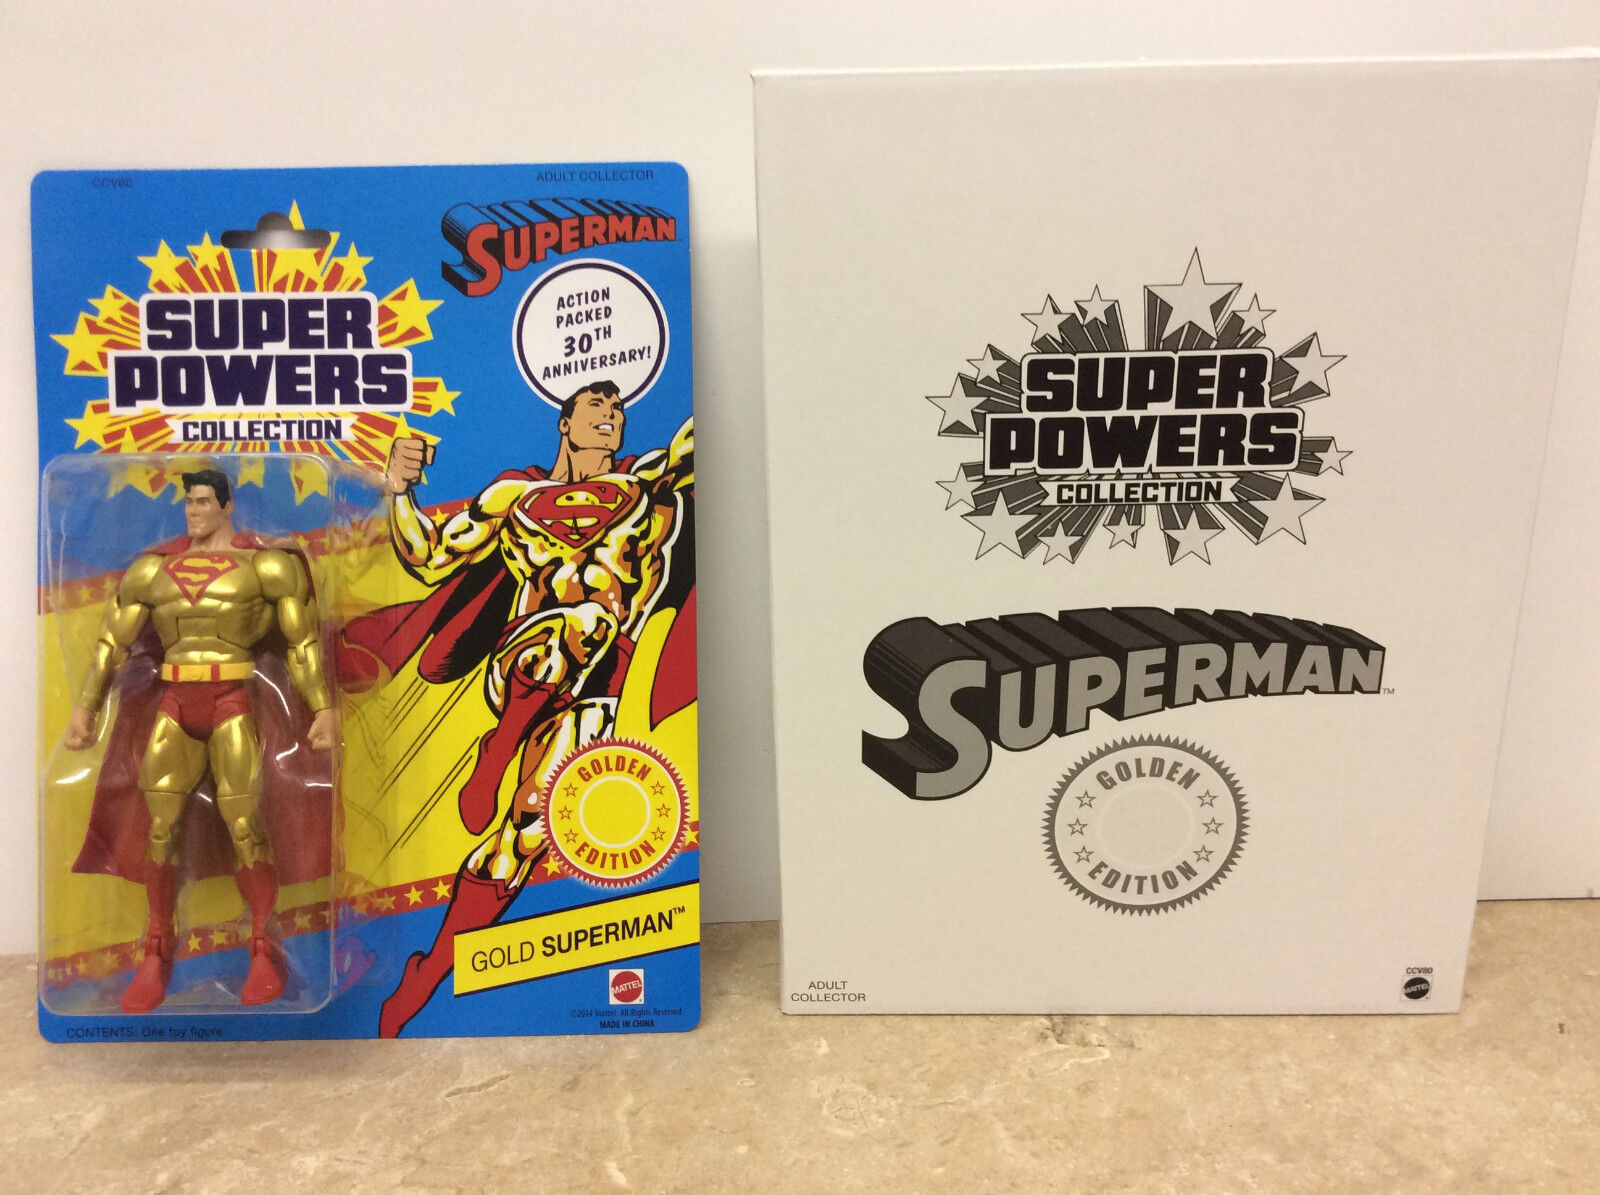 New In Box Super Powers Collection Matty Mattel SUPERMAN goldEN EDITION FIGURE